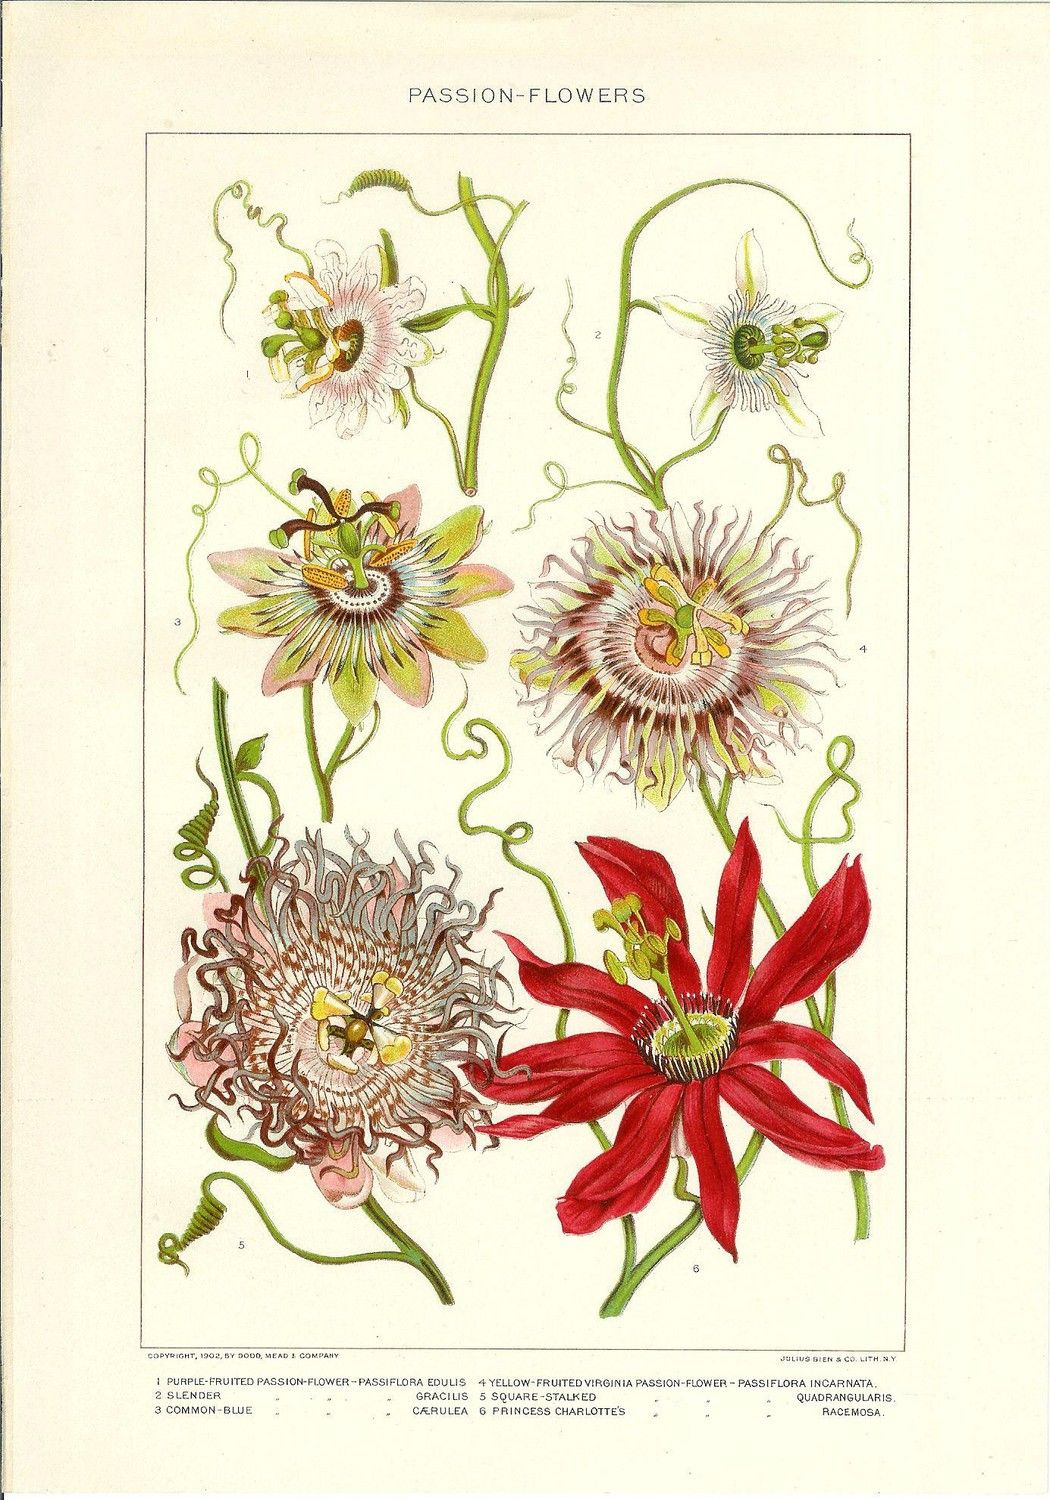 1909 Botany Print Passion Flowers Vintage Antique Art Illustration Book Plate Natural Science Great For Framing 100 Years Old Botanical Prints Botanical Illustration Botanical Painting